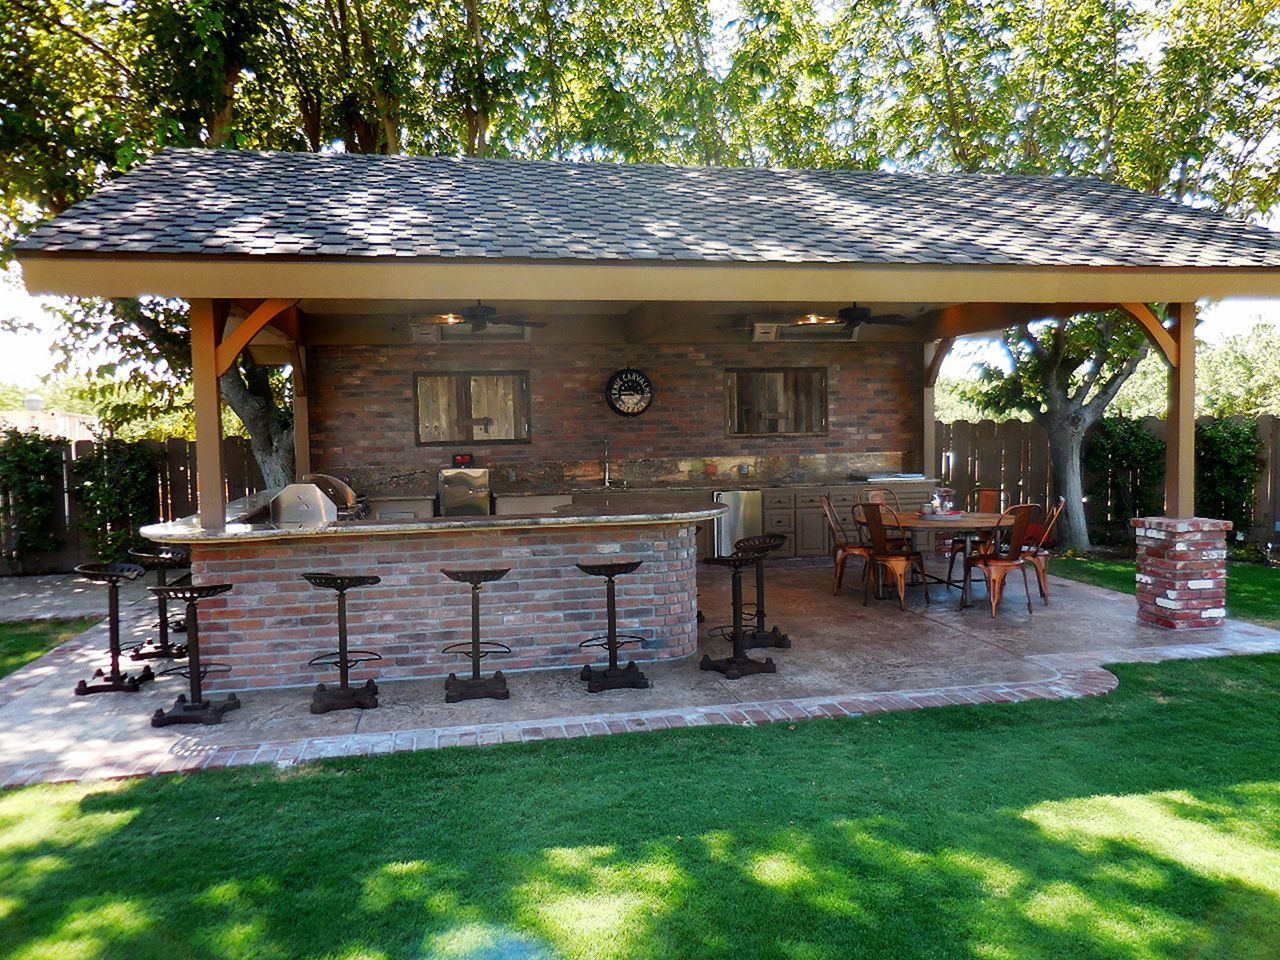 Enjoy Cooking With Amazing Outdoor Kitchen Ideas 48 Best